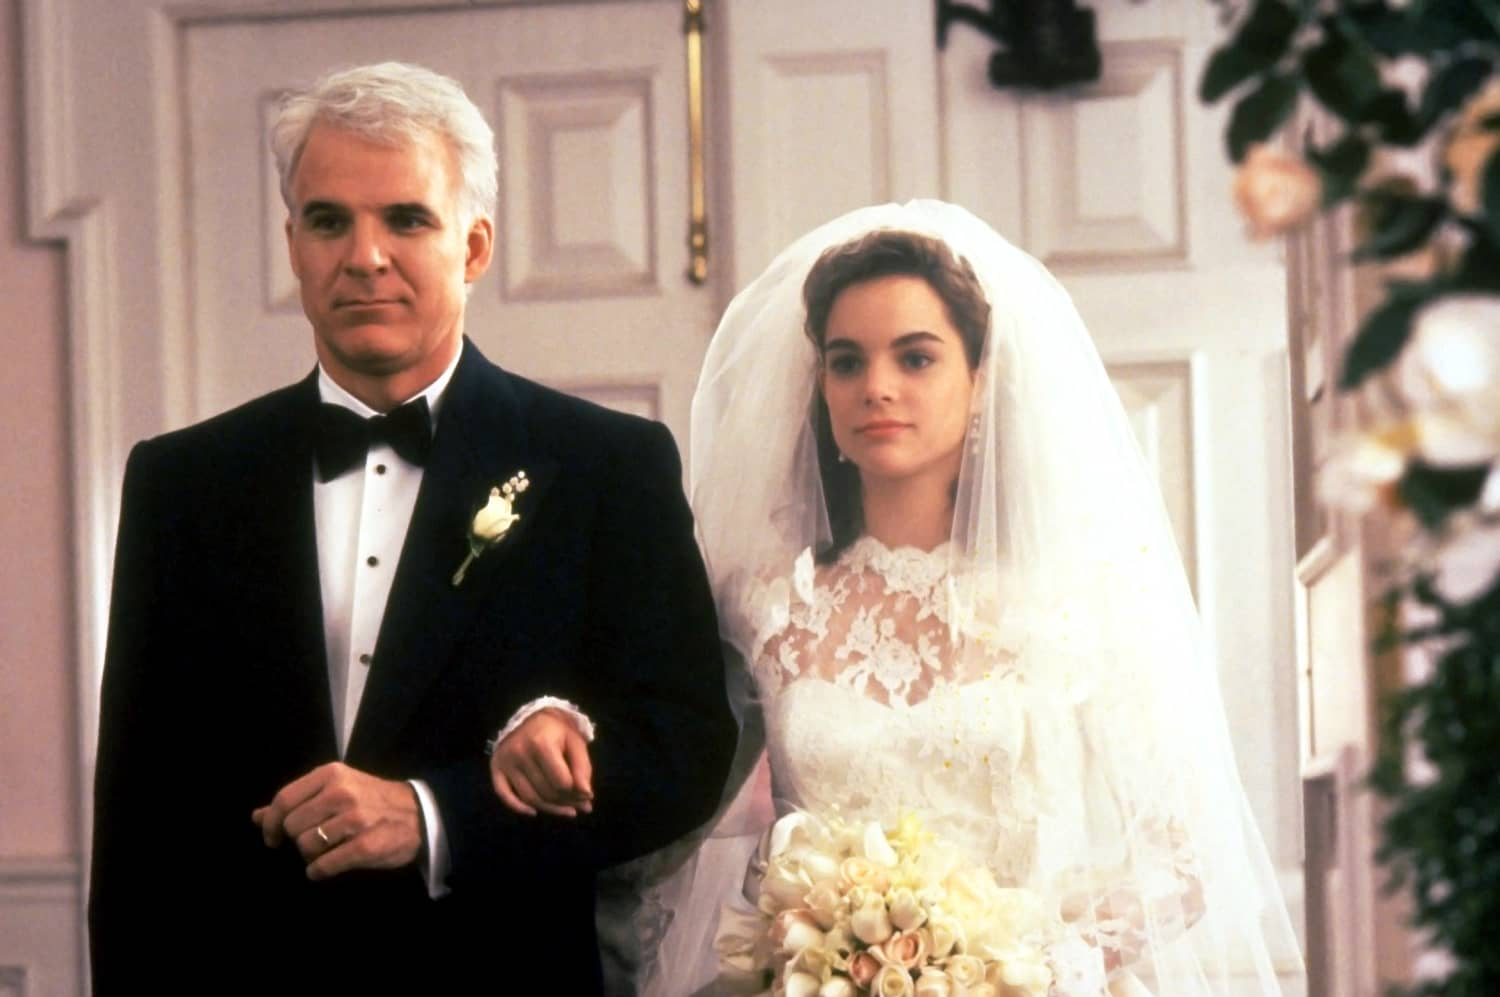 The Star-Studded 'Father of the Bride' Reunion Featured a Zoom Wedding in Sweatpants